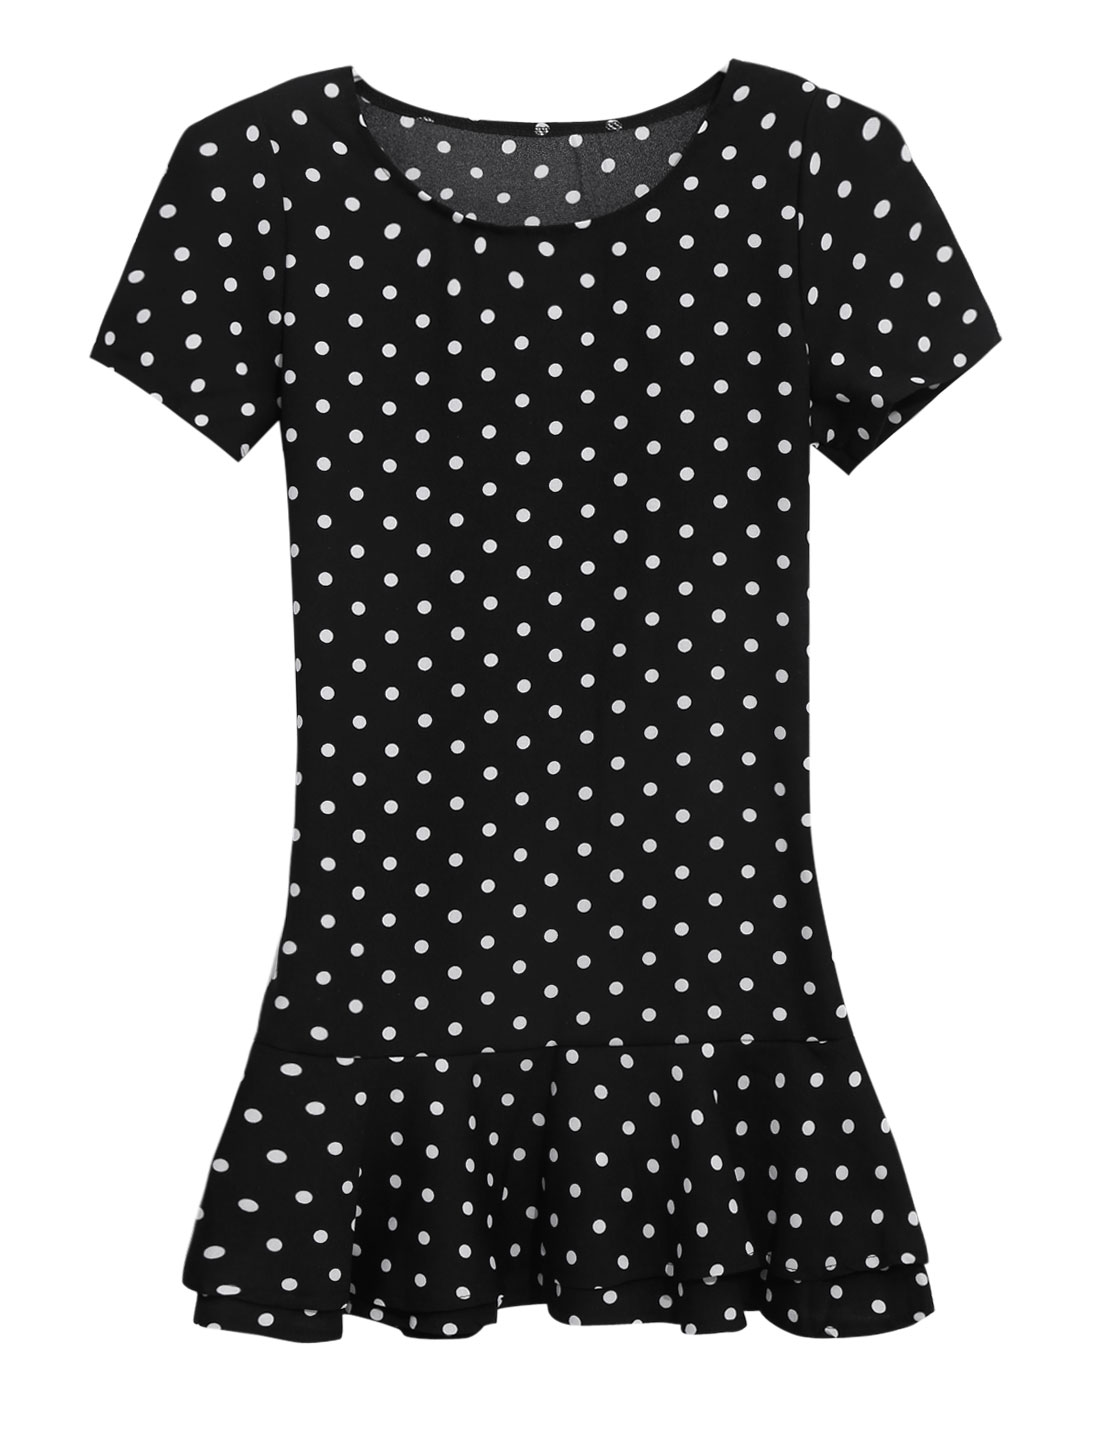 Lady Dots Pattern Short Sleeve Ruffled Hem Casual Dress Black XS